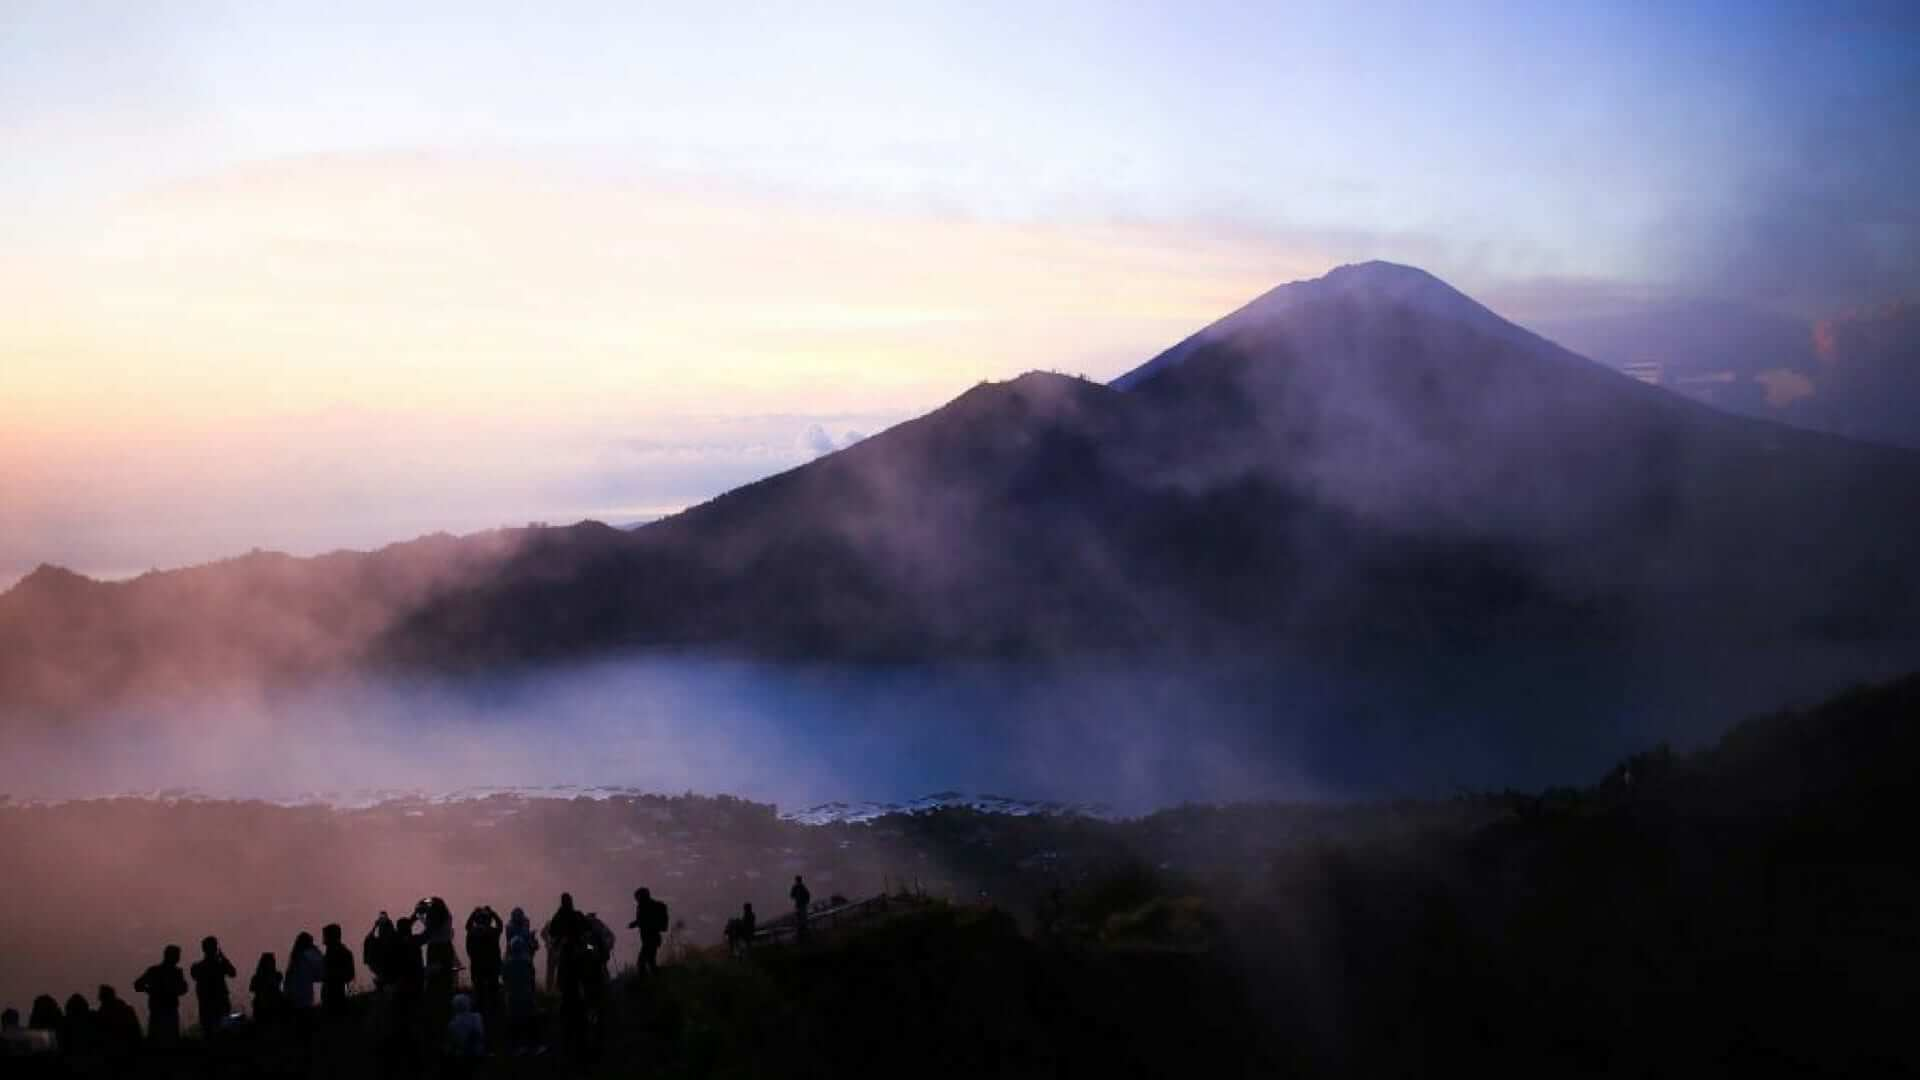 Silhouette of people hiking on Mount Batur early in the morning in Bali.